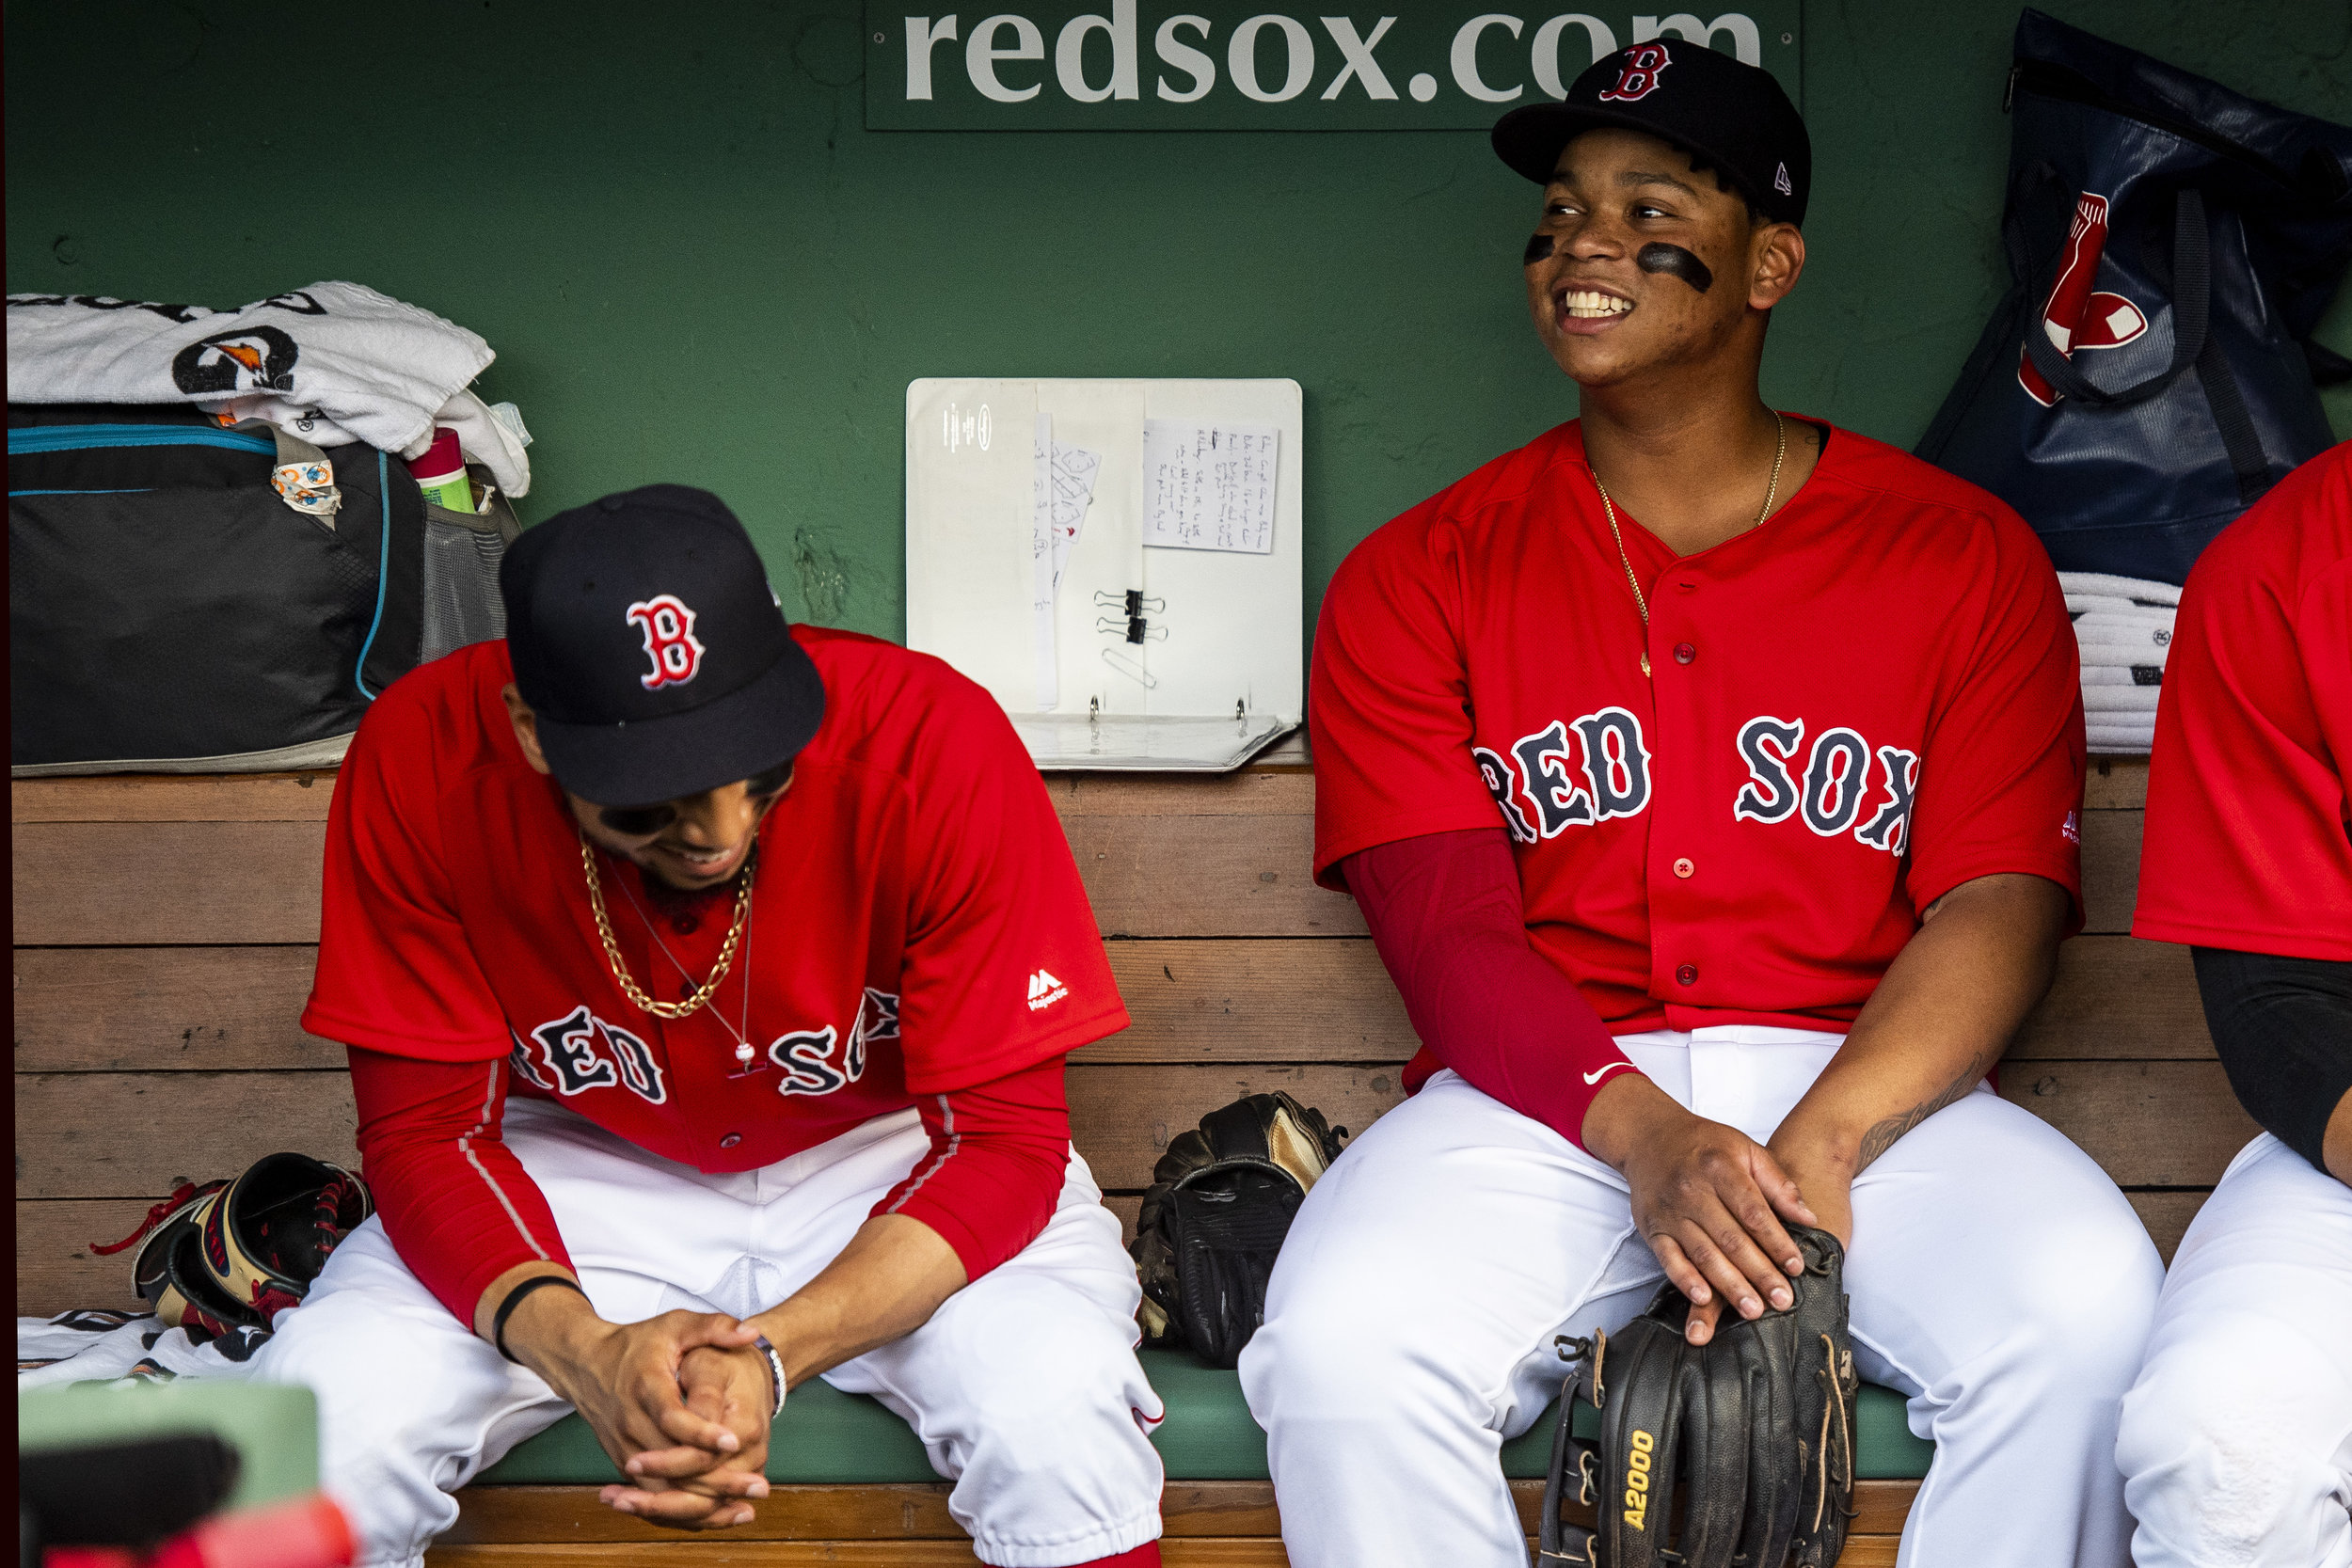 July 26, 2018, Boston, MA: Boston Red Sox outfielder Mookie Betts, Boston Red Sox third basemen Rafael Devers and Boston Red Sox shortstop Xander Bogaerts hang out int he dugout before the Boston Red Sox face the Minnesota Twins at Fenway Park in Boston, Massachusetts on Friday, July 27, 2018. (Photo by Matthew Thomas/Boston Red Sox)